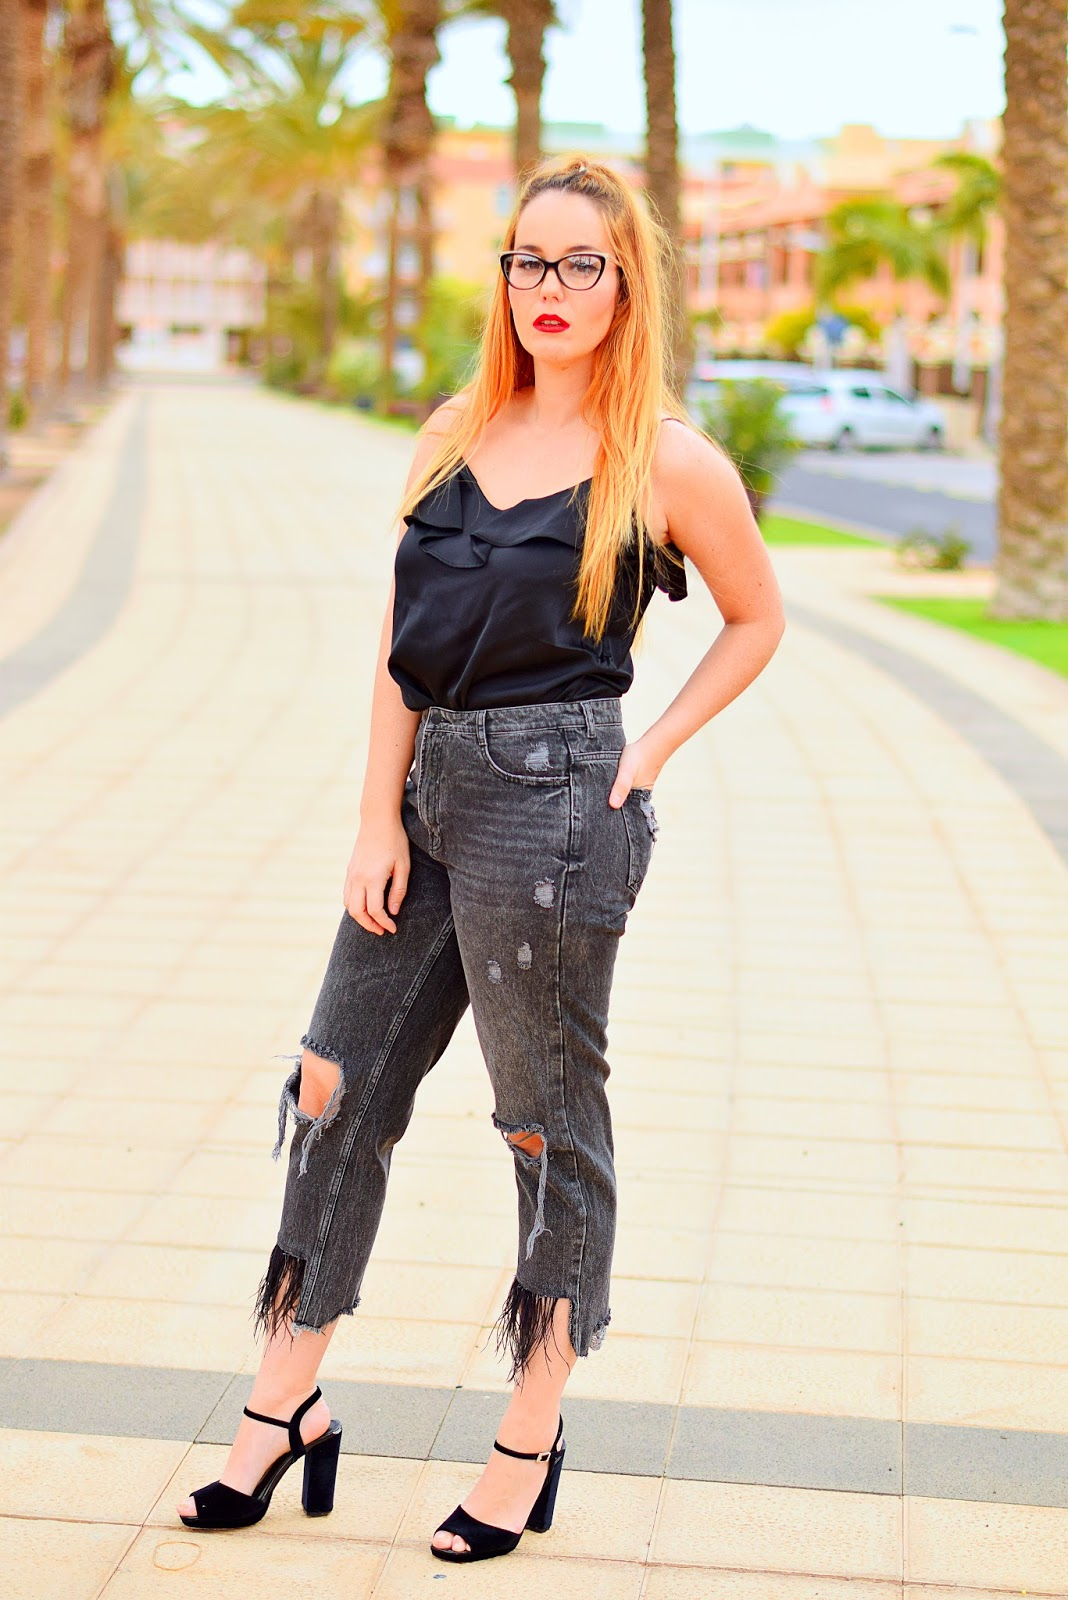 nery hdez, opticalh, gafas graduadas, pantalones con plumas , ripped jeans with feathers